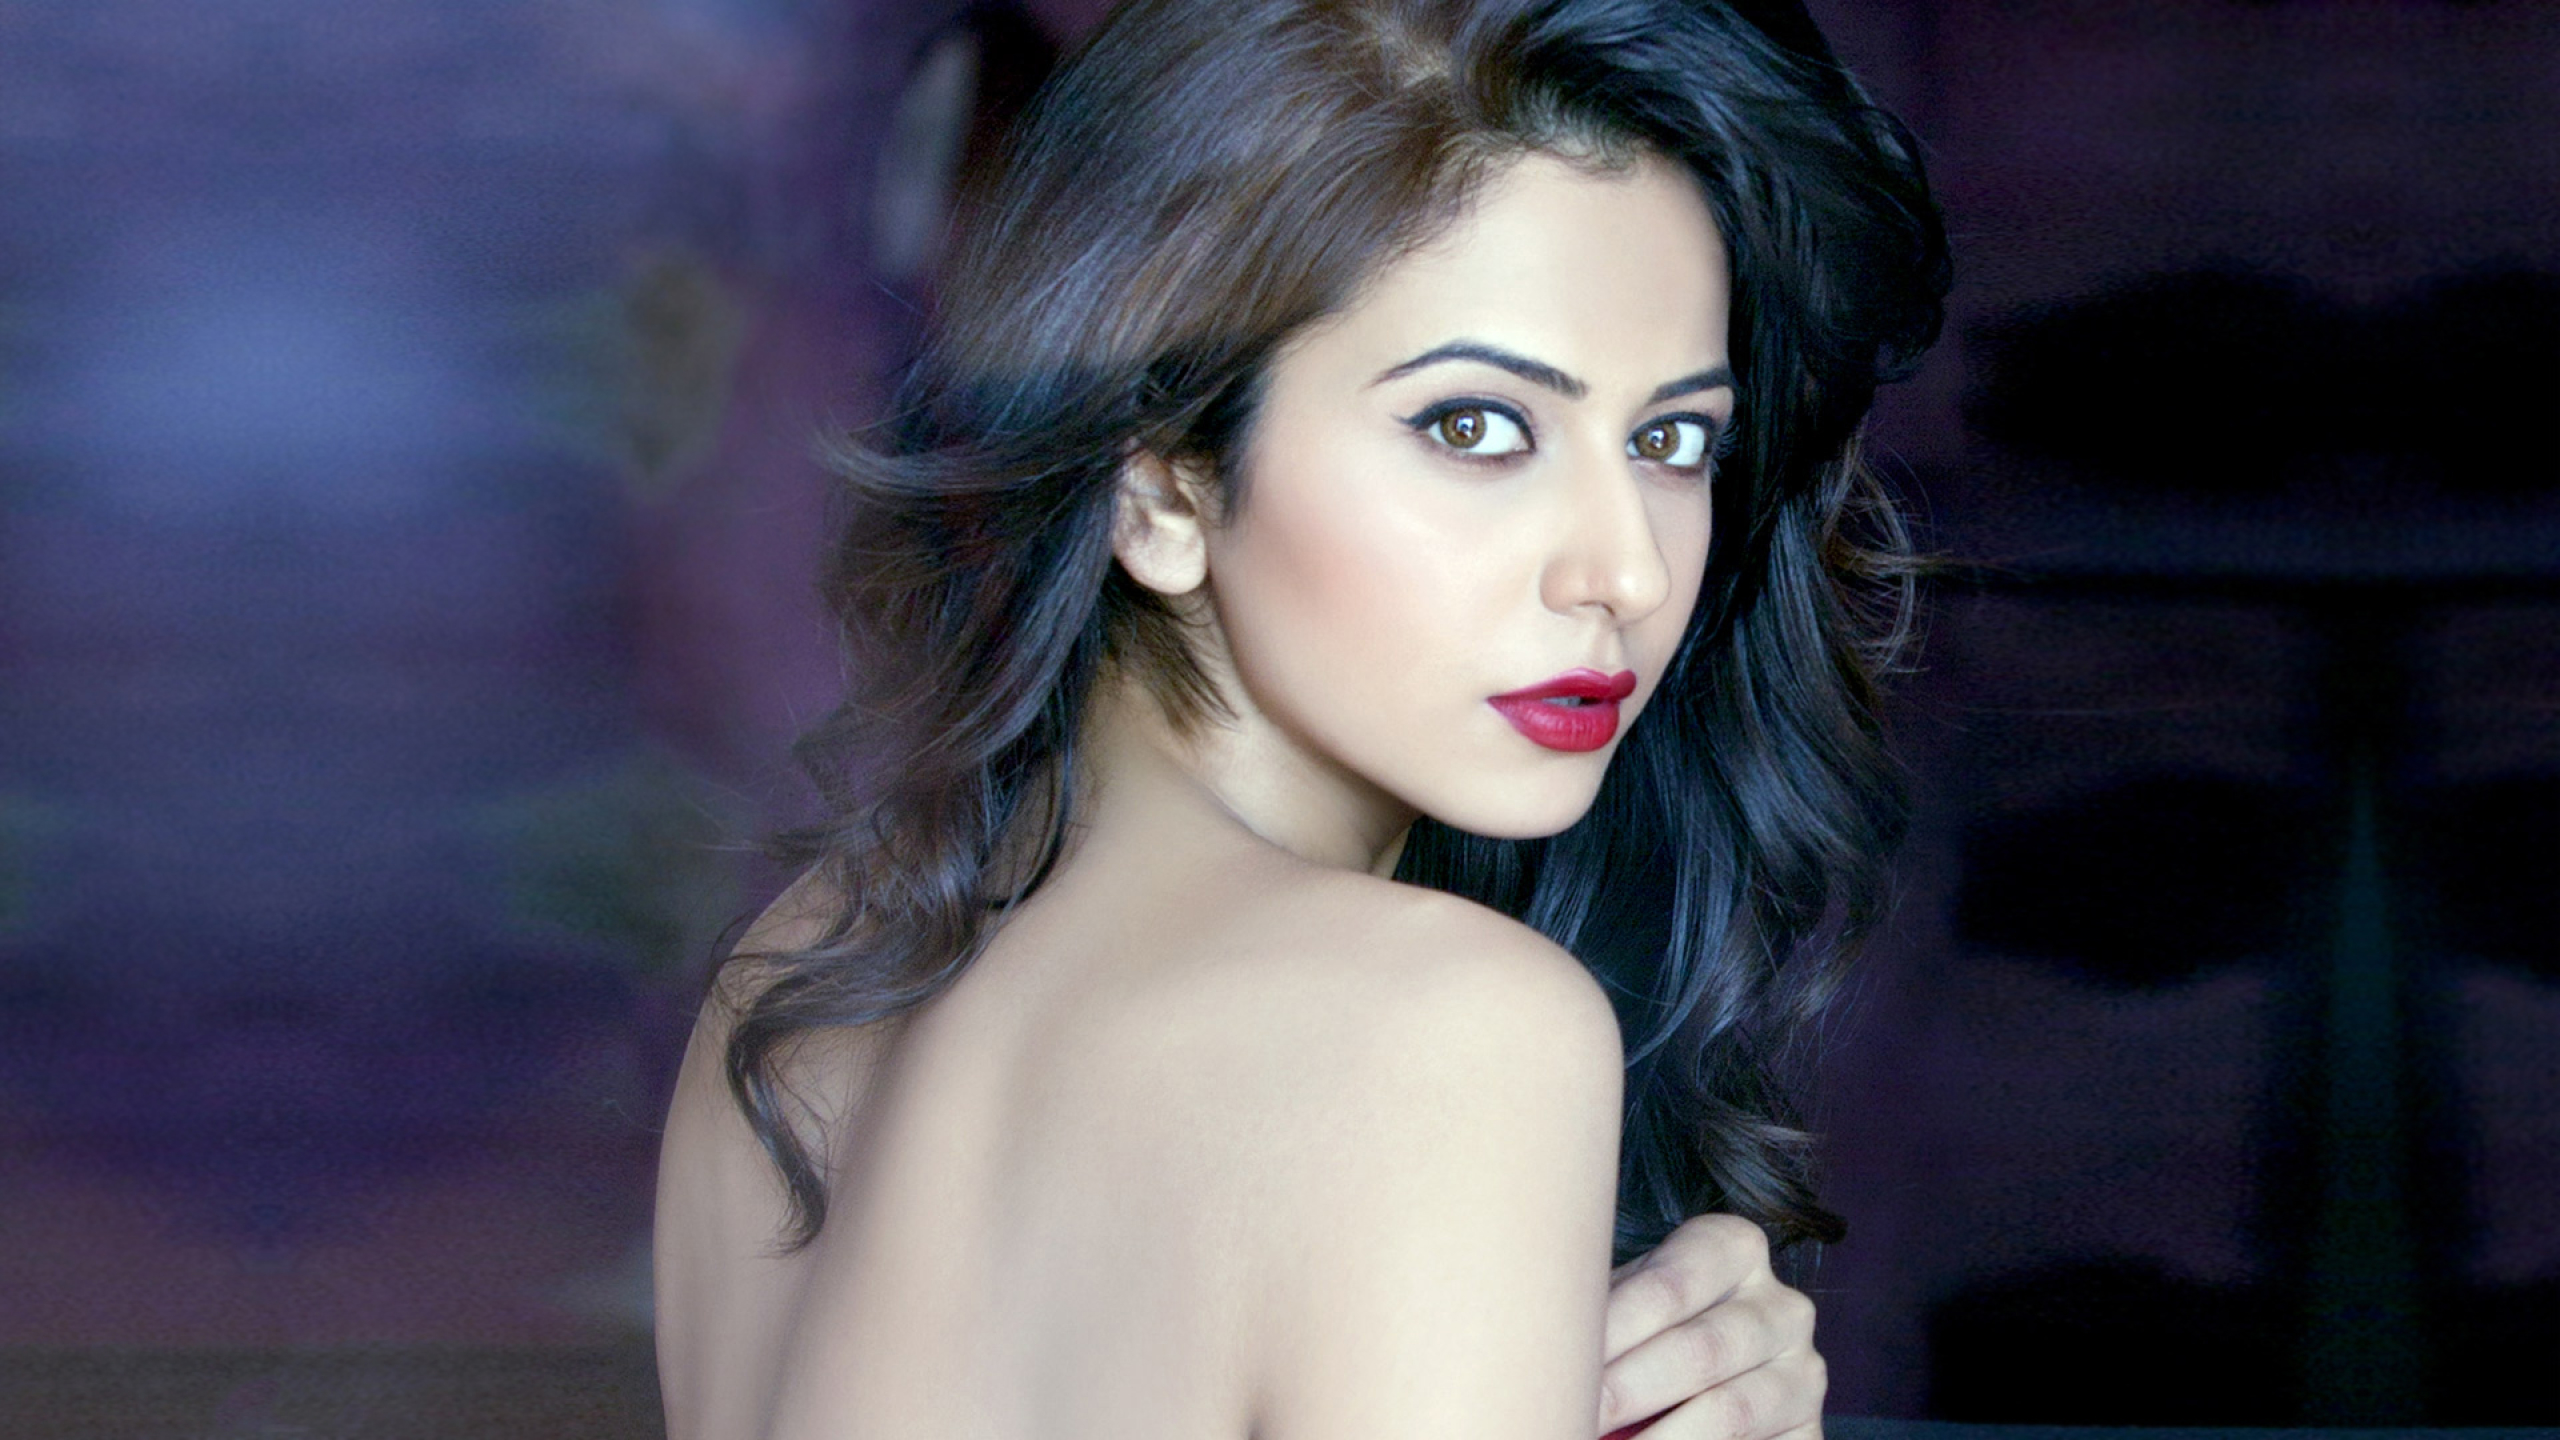 Rakul Preet Singh Fabulous Photoshoot, Full HD Wallpaper